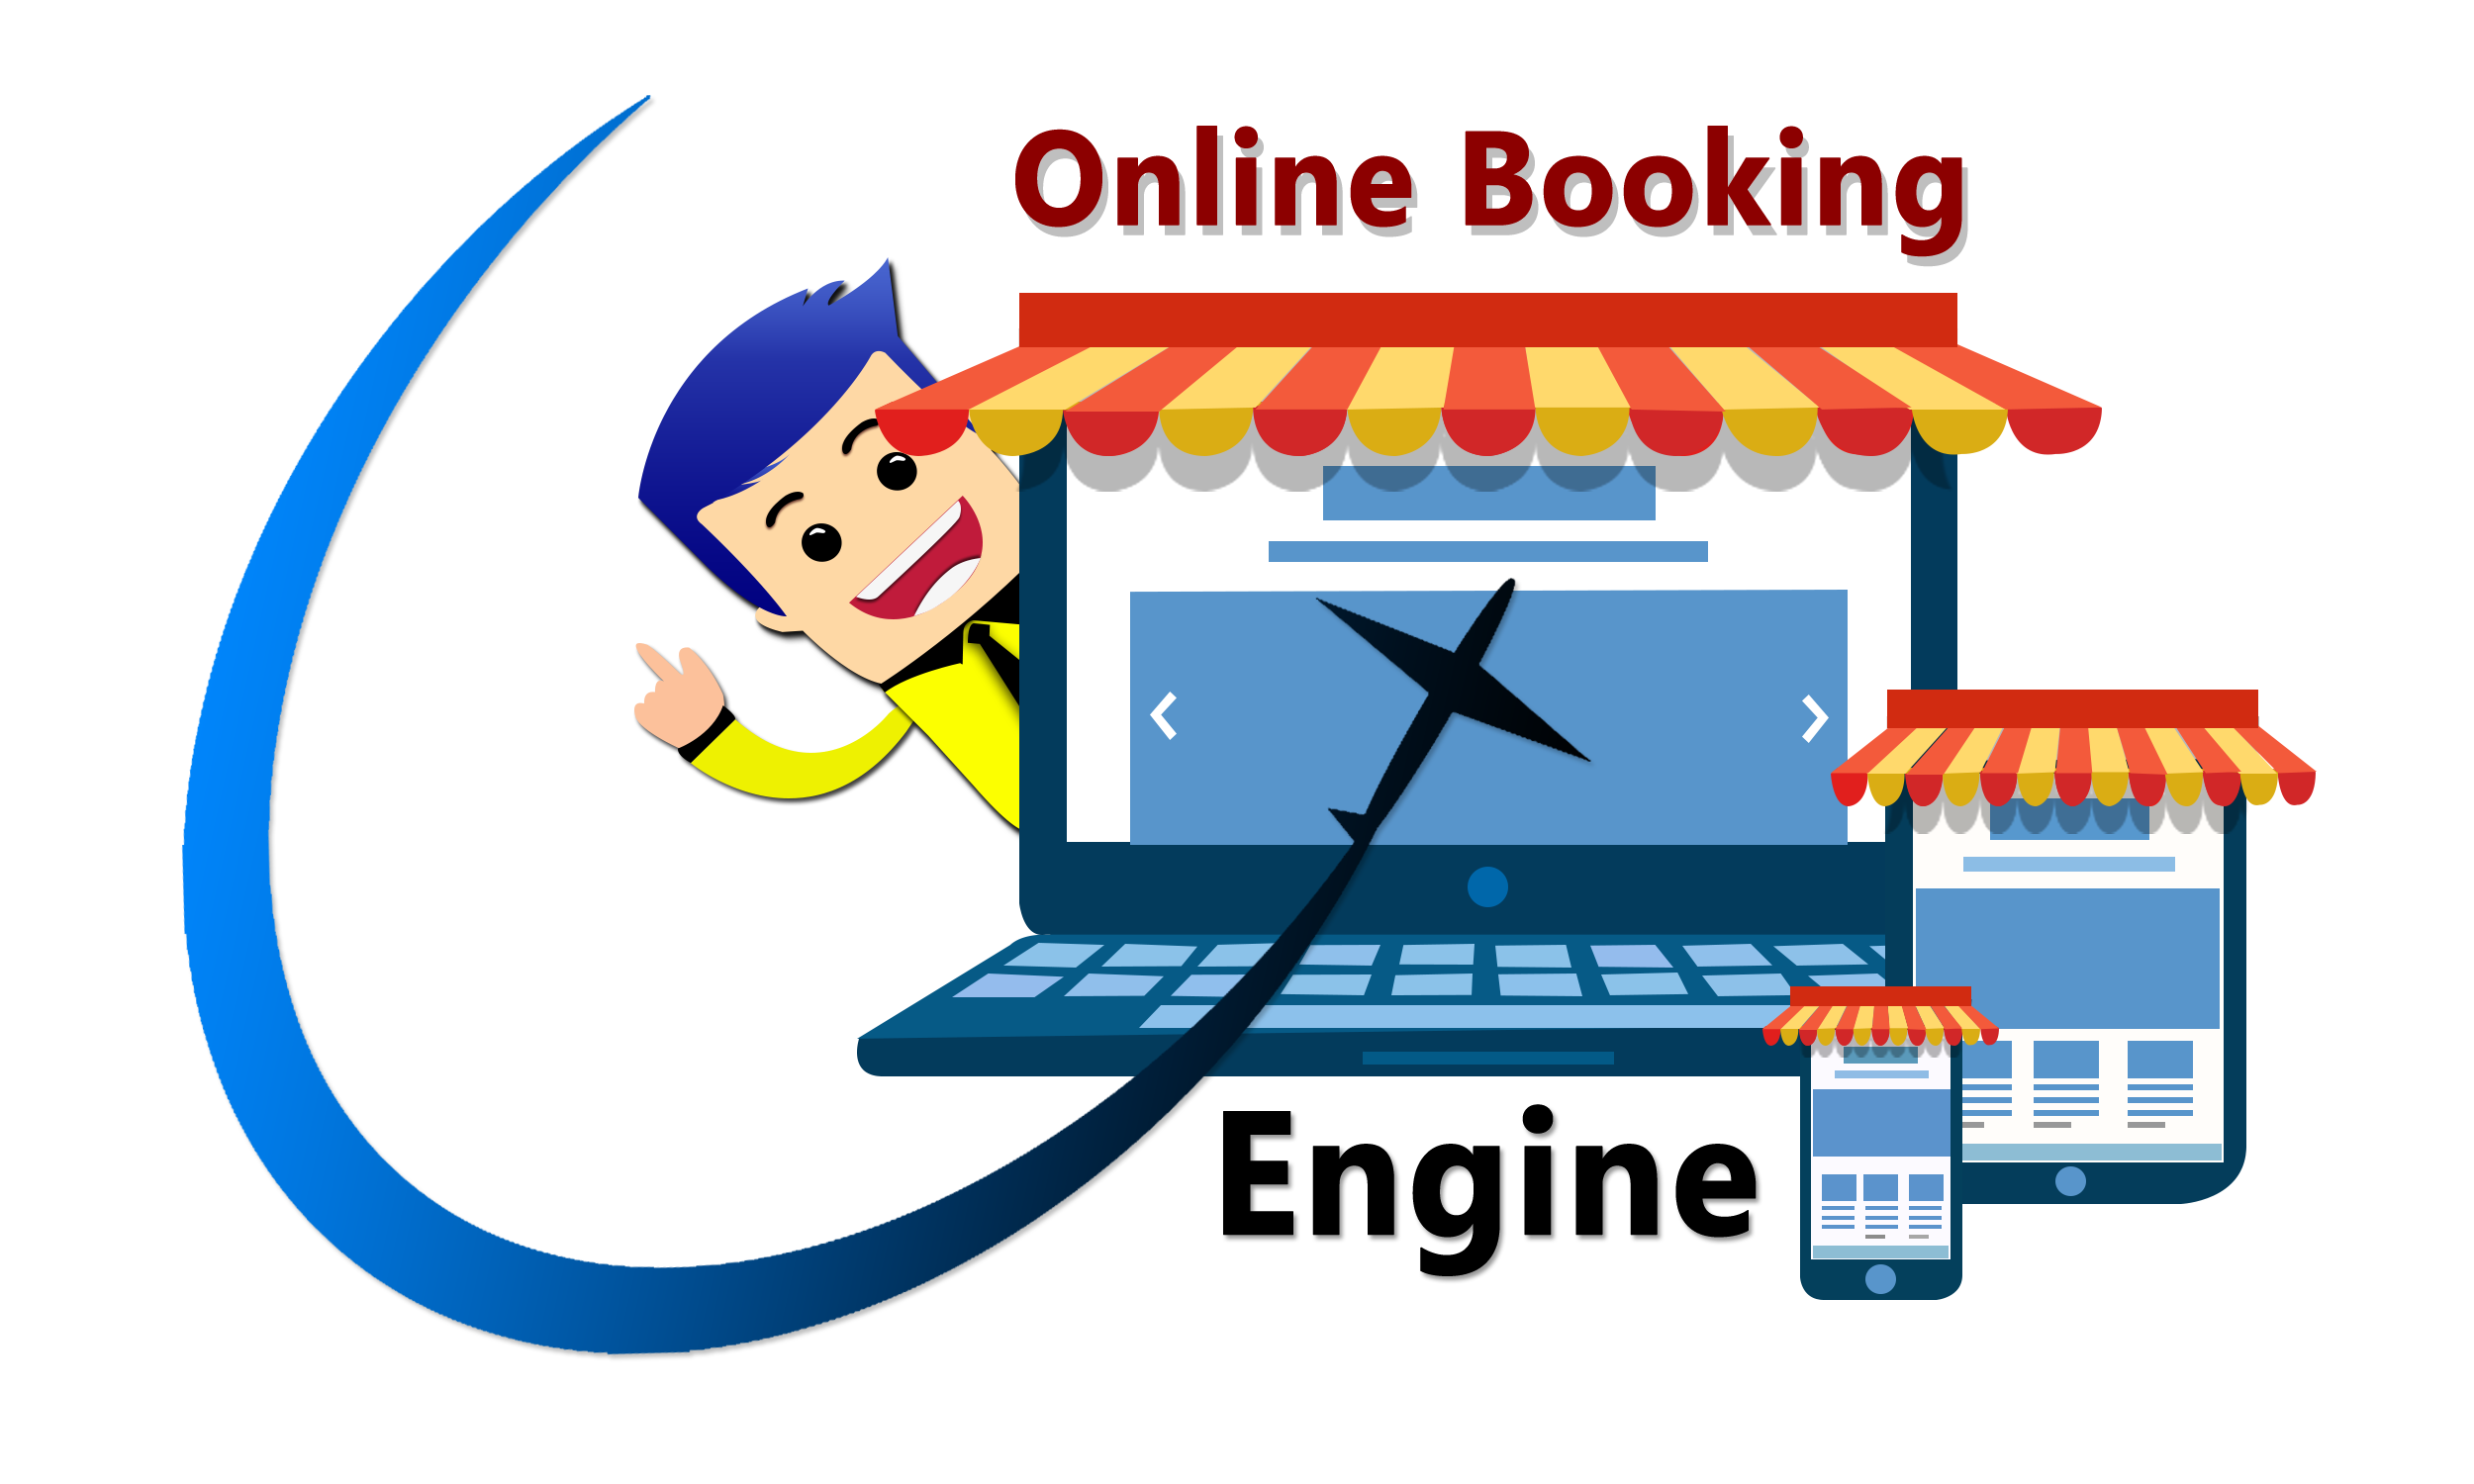 Airlines png online bookings 5 » PNG Image.